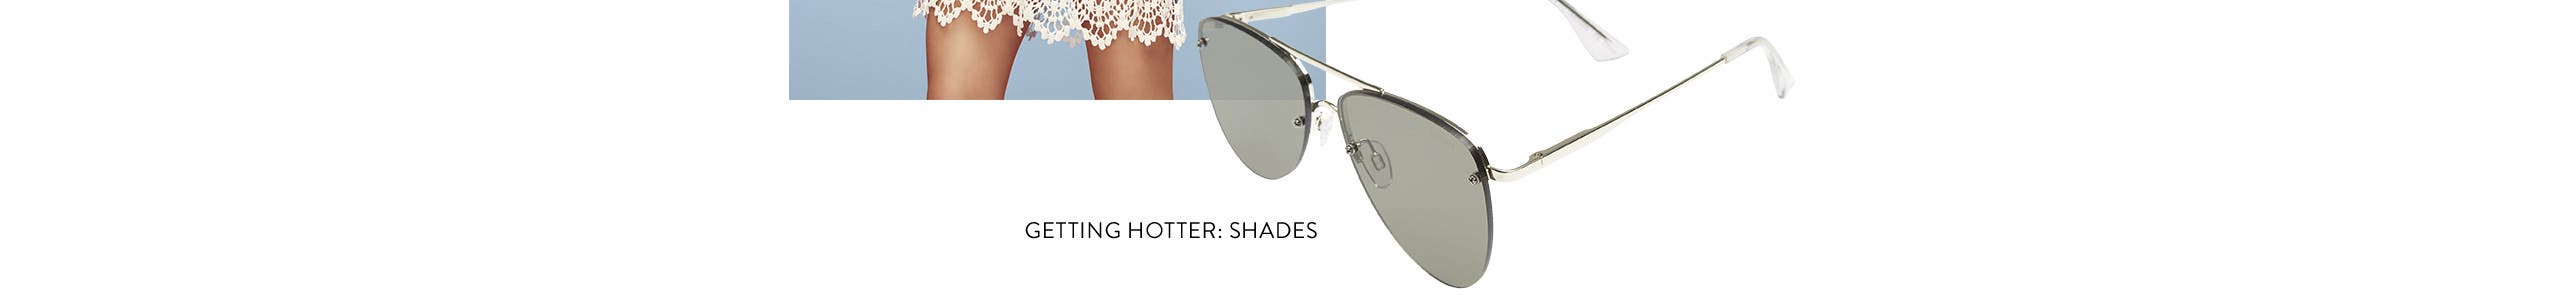 Getting hotter with women's shades.